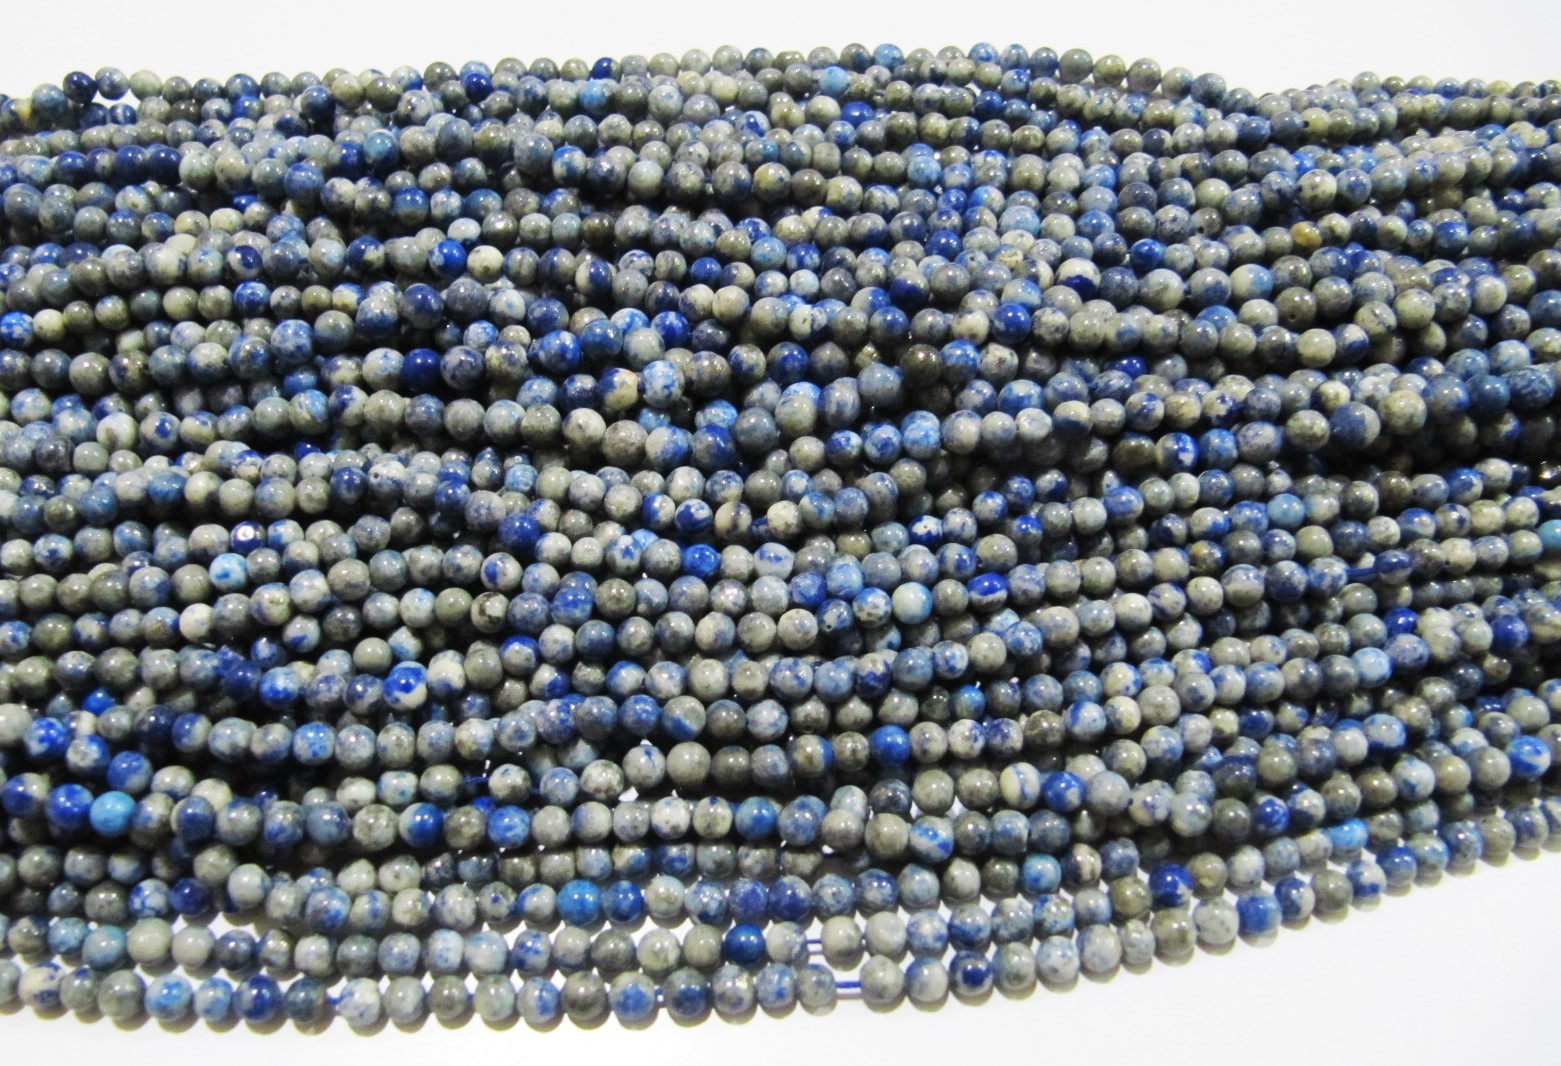 Natural Genuine Lapis Lazuli Round Plain Beads